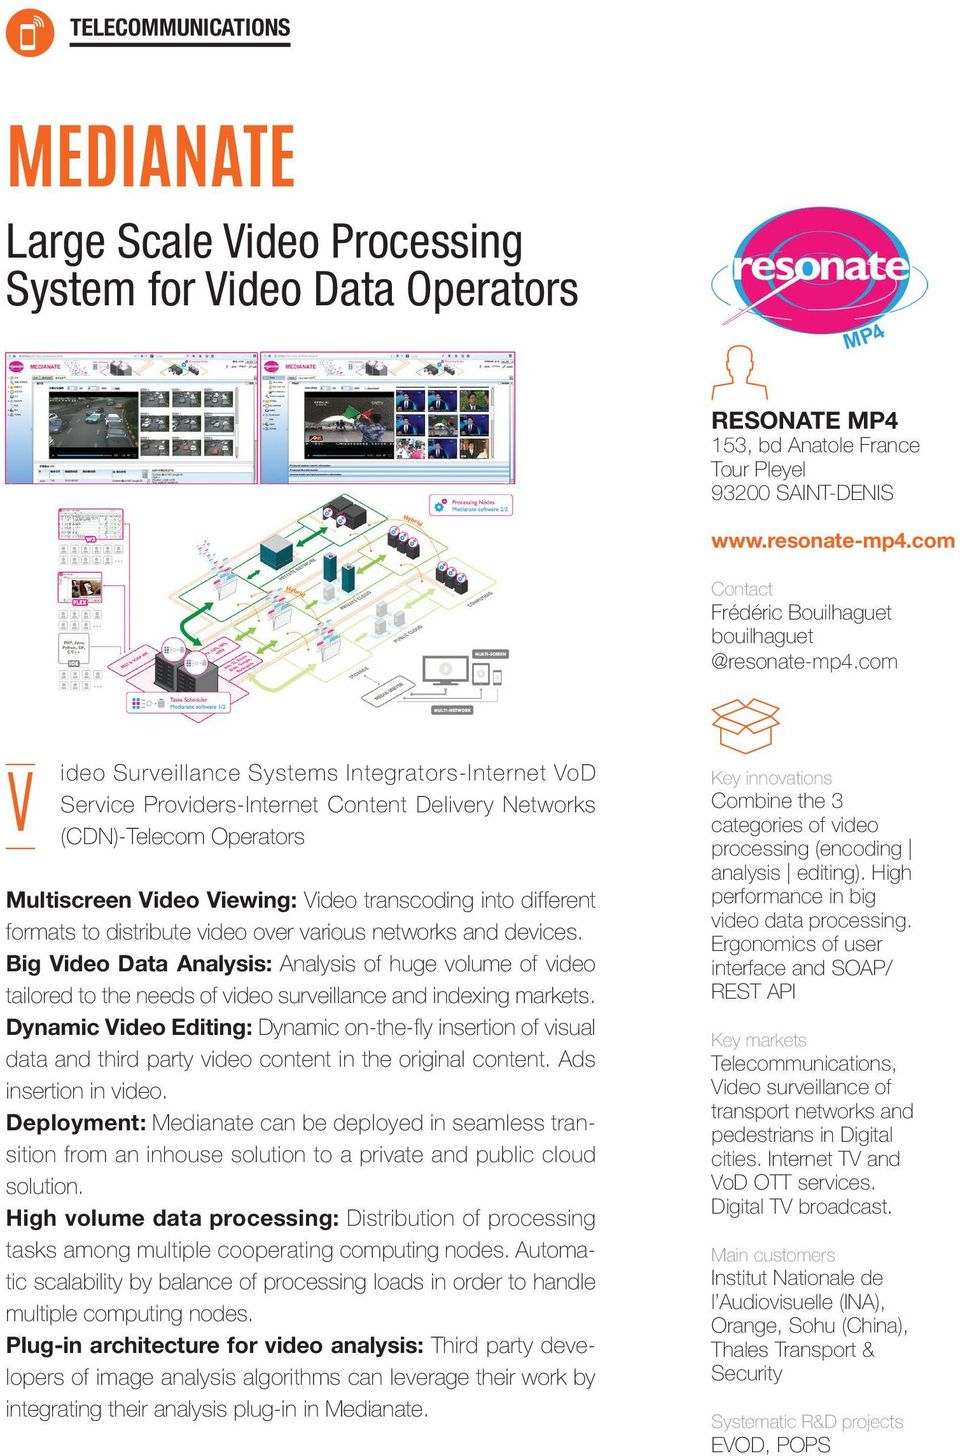 com V ideo Surveillance Systems Integrators-Internet VoD Service Providers-Internet Content Delivery Networks (CDN)-Telecom Operators Multiscreen Video Viewing: Video transcoding into different